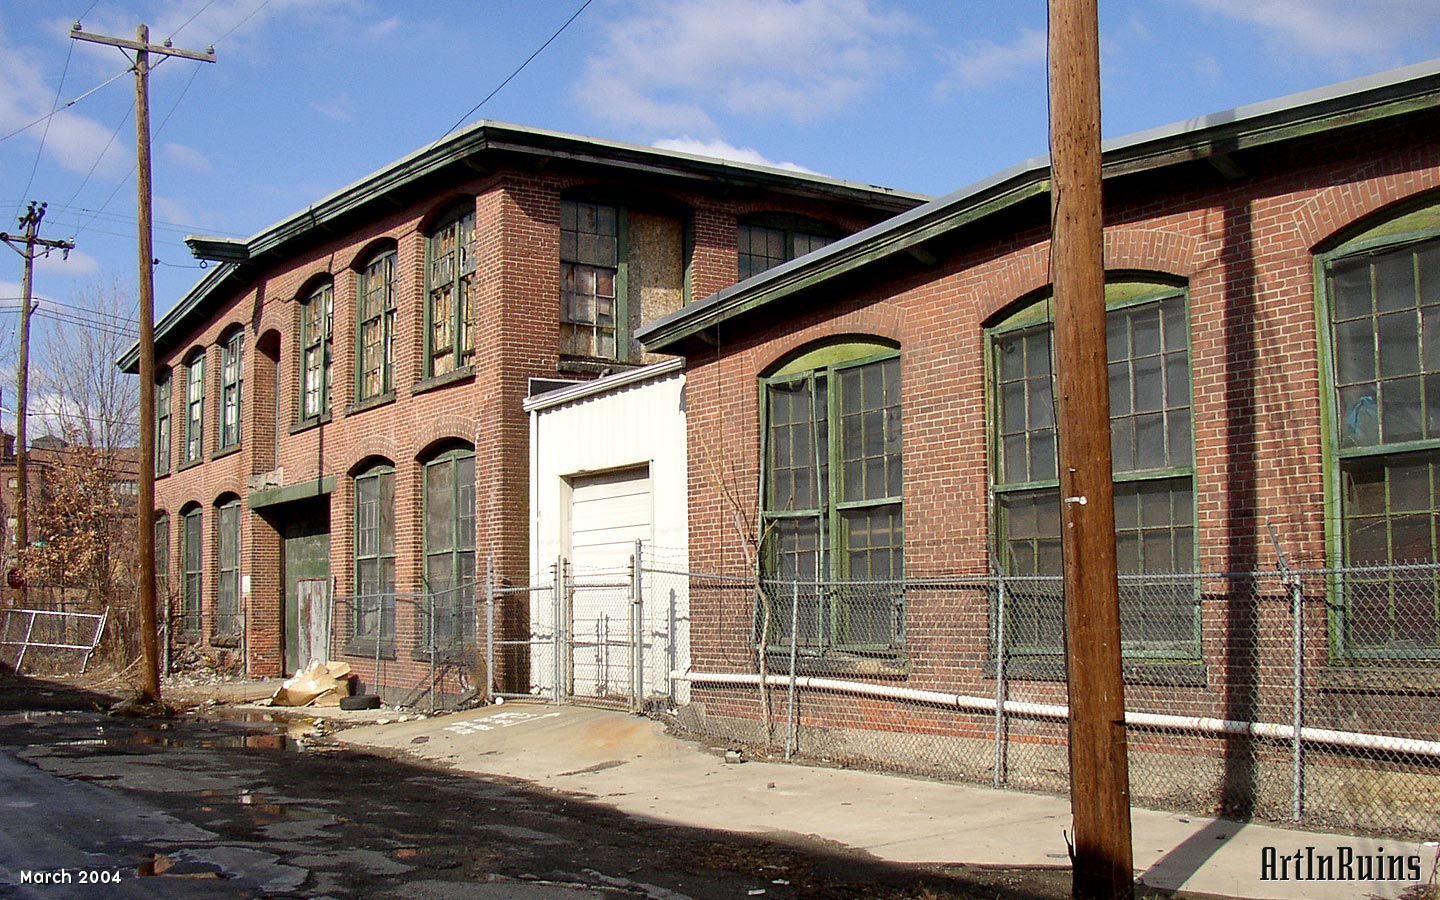 A two story L-shaped small complex of red brick mill buildings including a boiler house with large stack. Windows are double-hung, multi-pane style with arched lintels and granite sills. Brickwork has some slight decorative elements along the roof line to accent piers between windows.